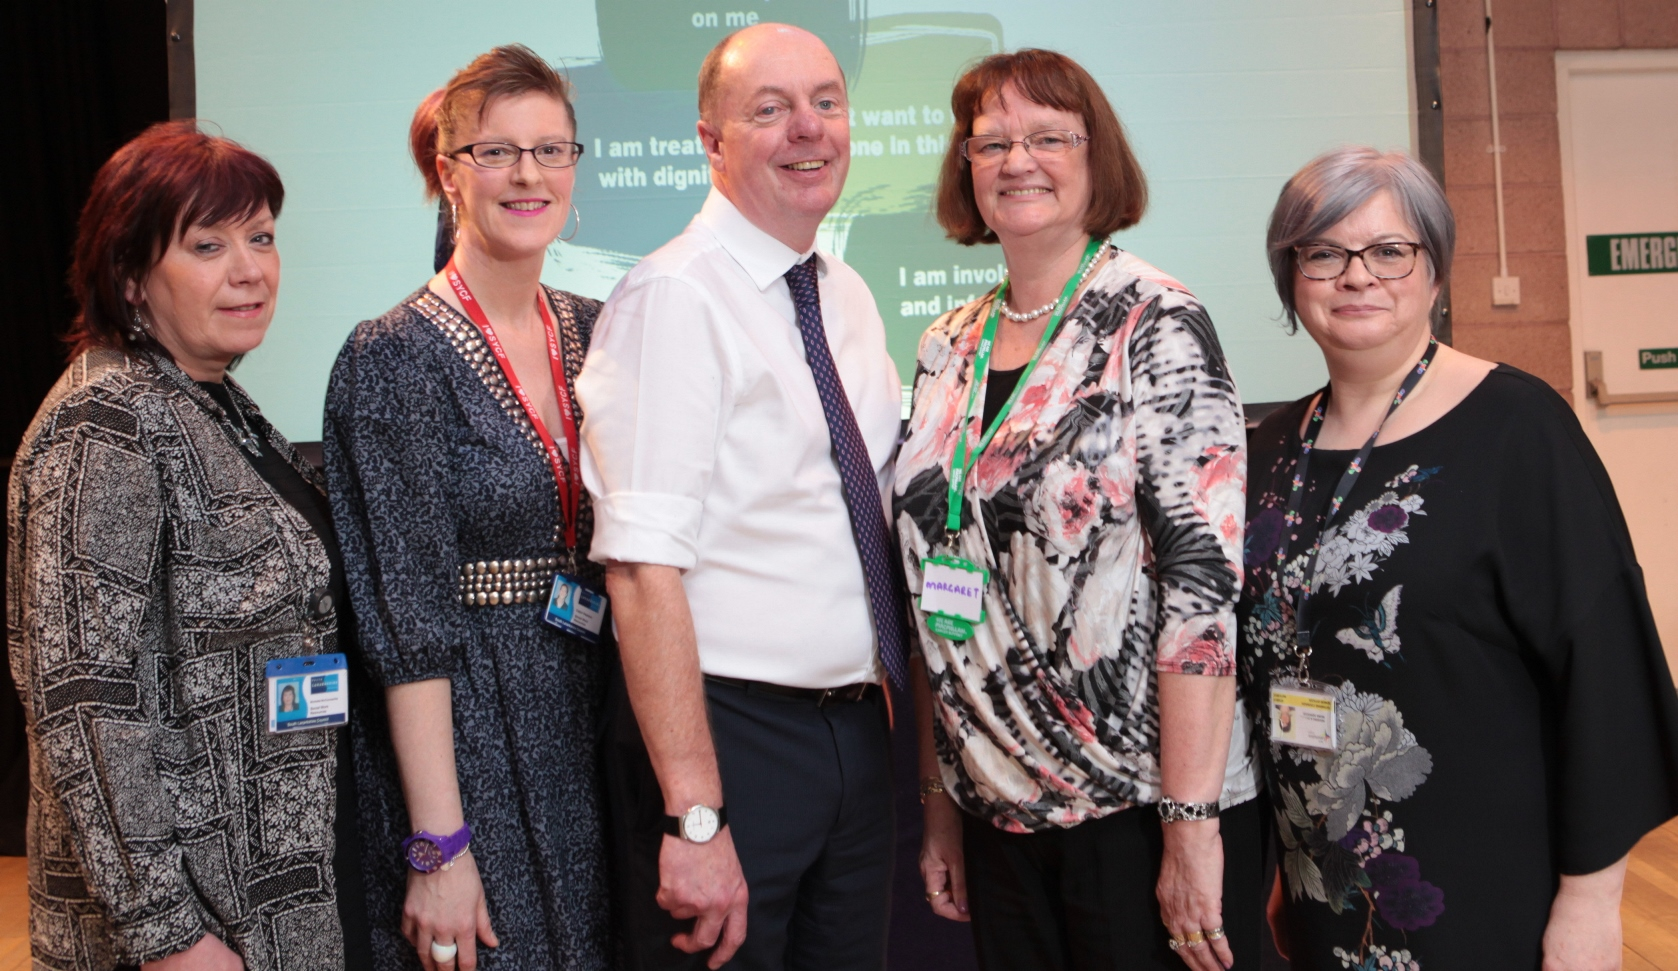 Benefits of Transforming Care After Treatment project brought into sharp focus